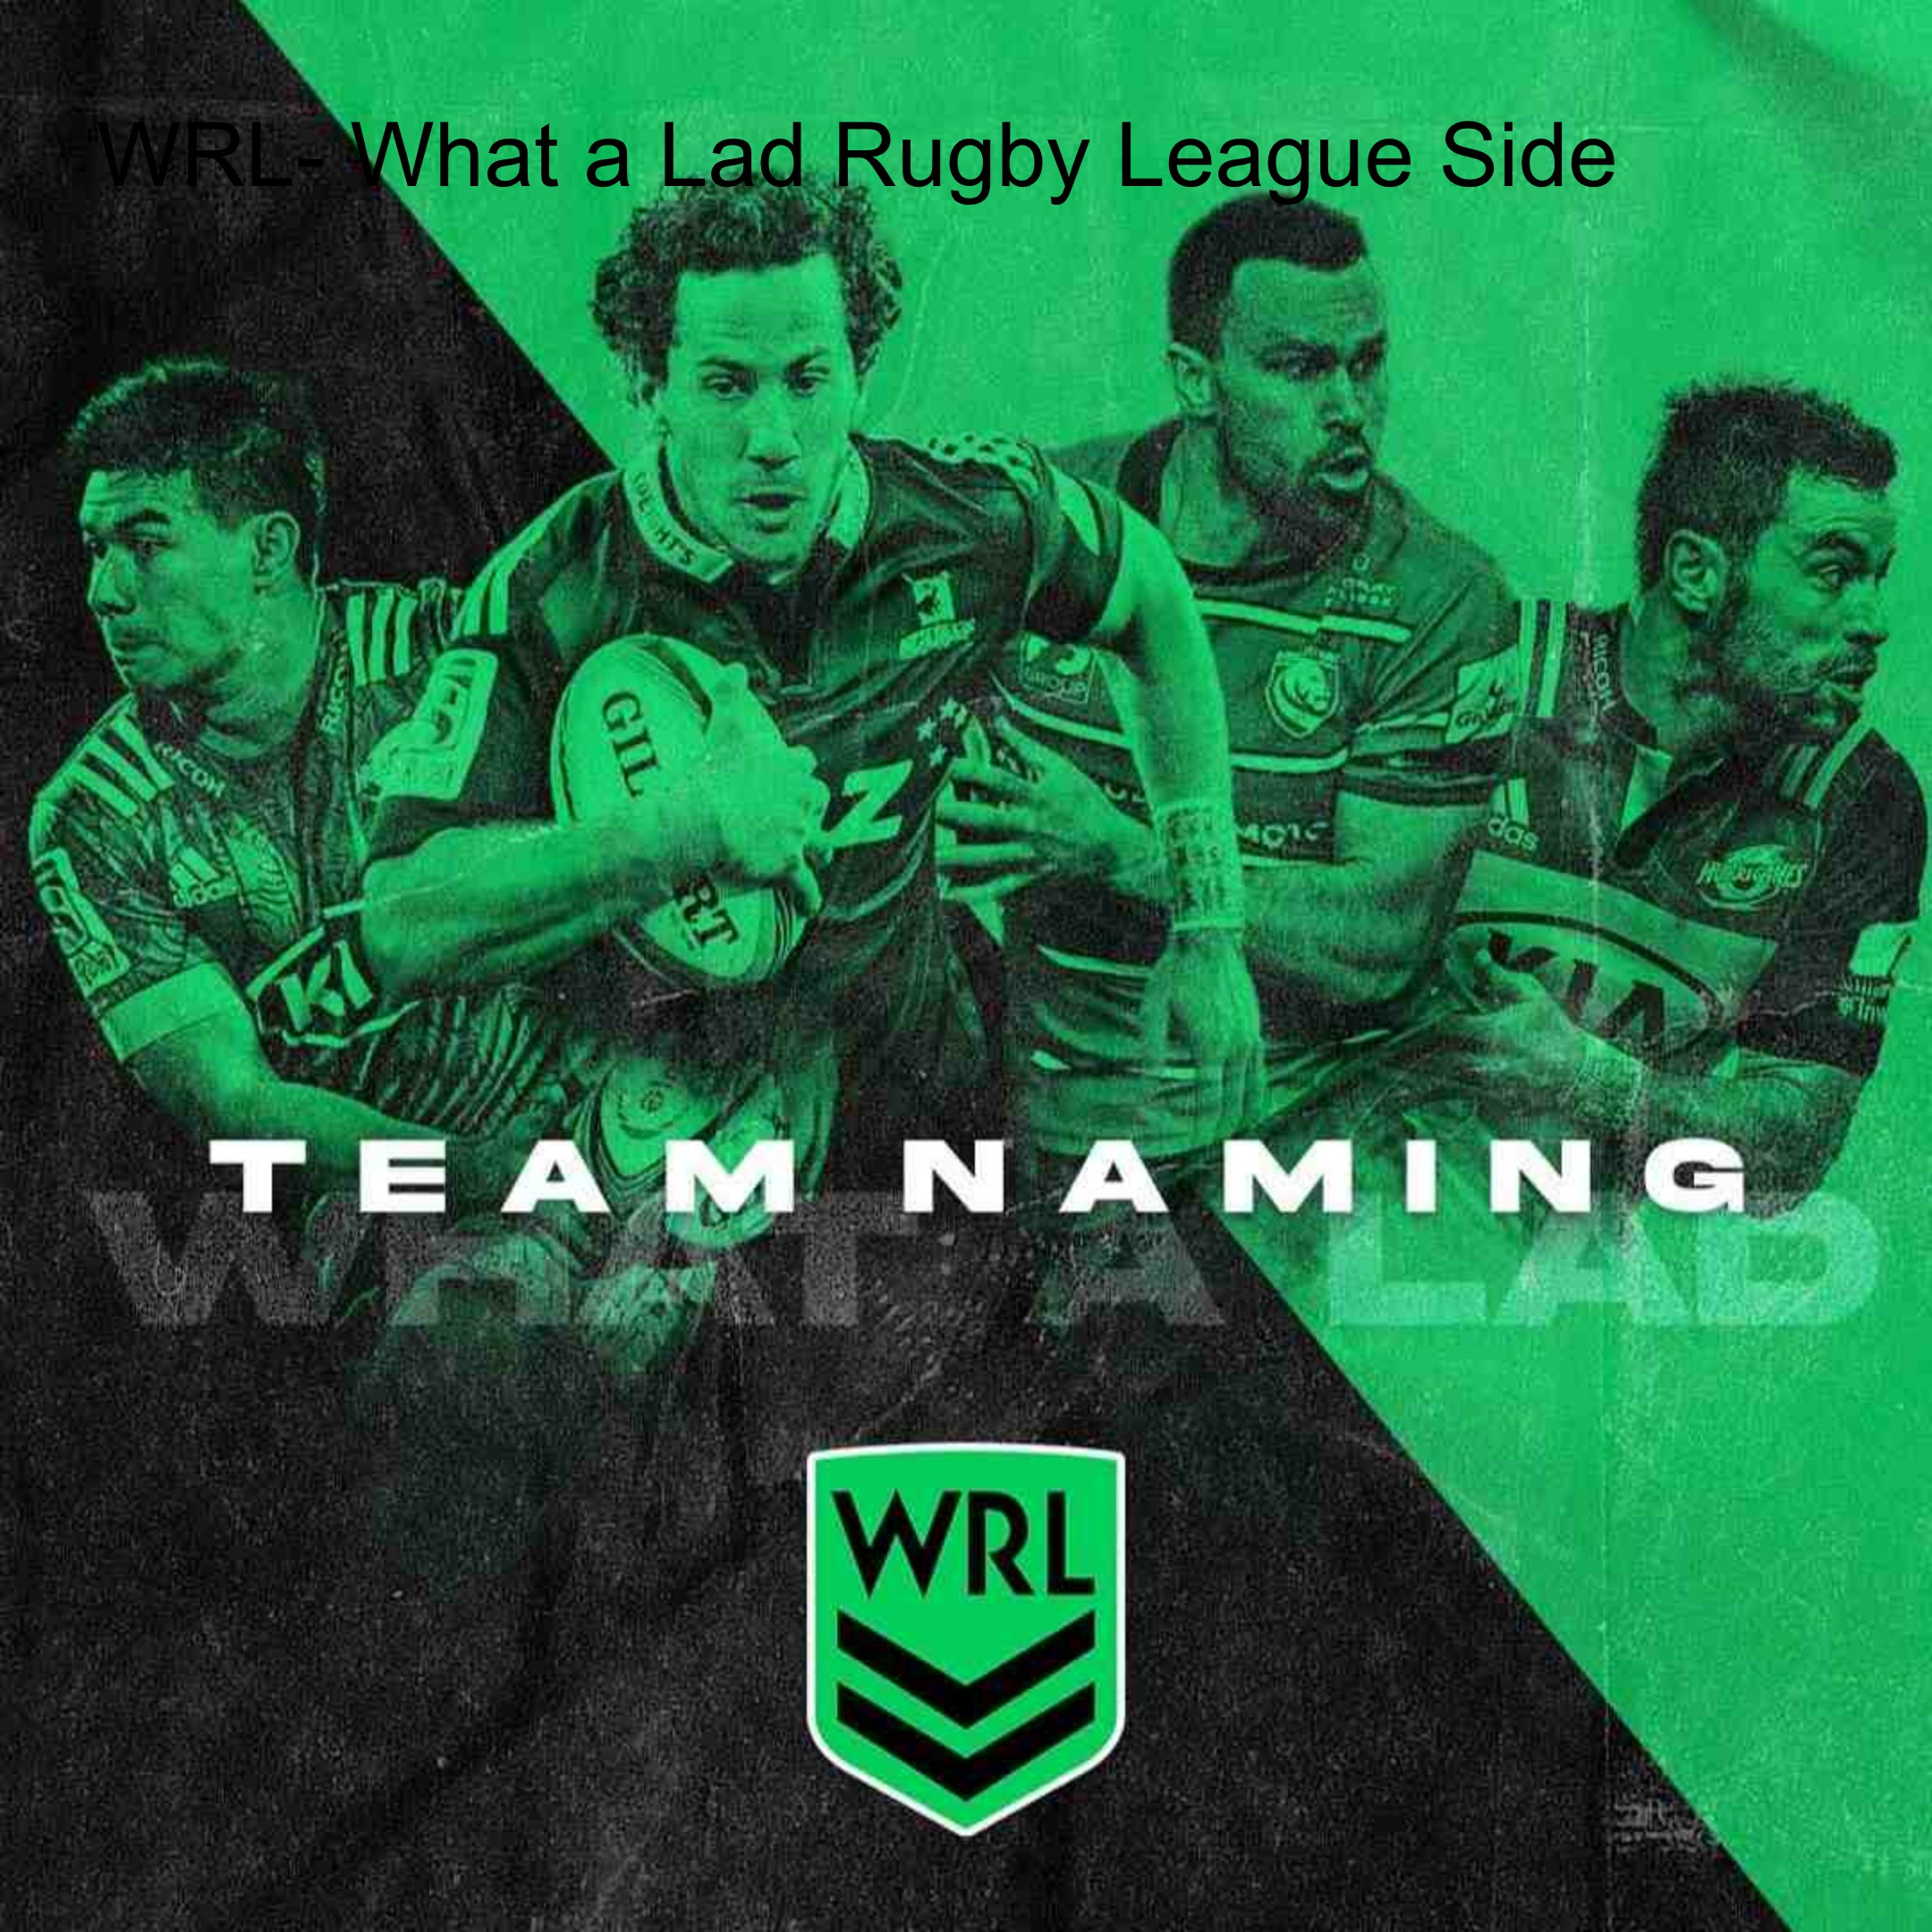 WRL- What a Lad Rugby League Side